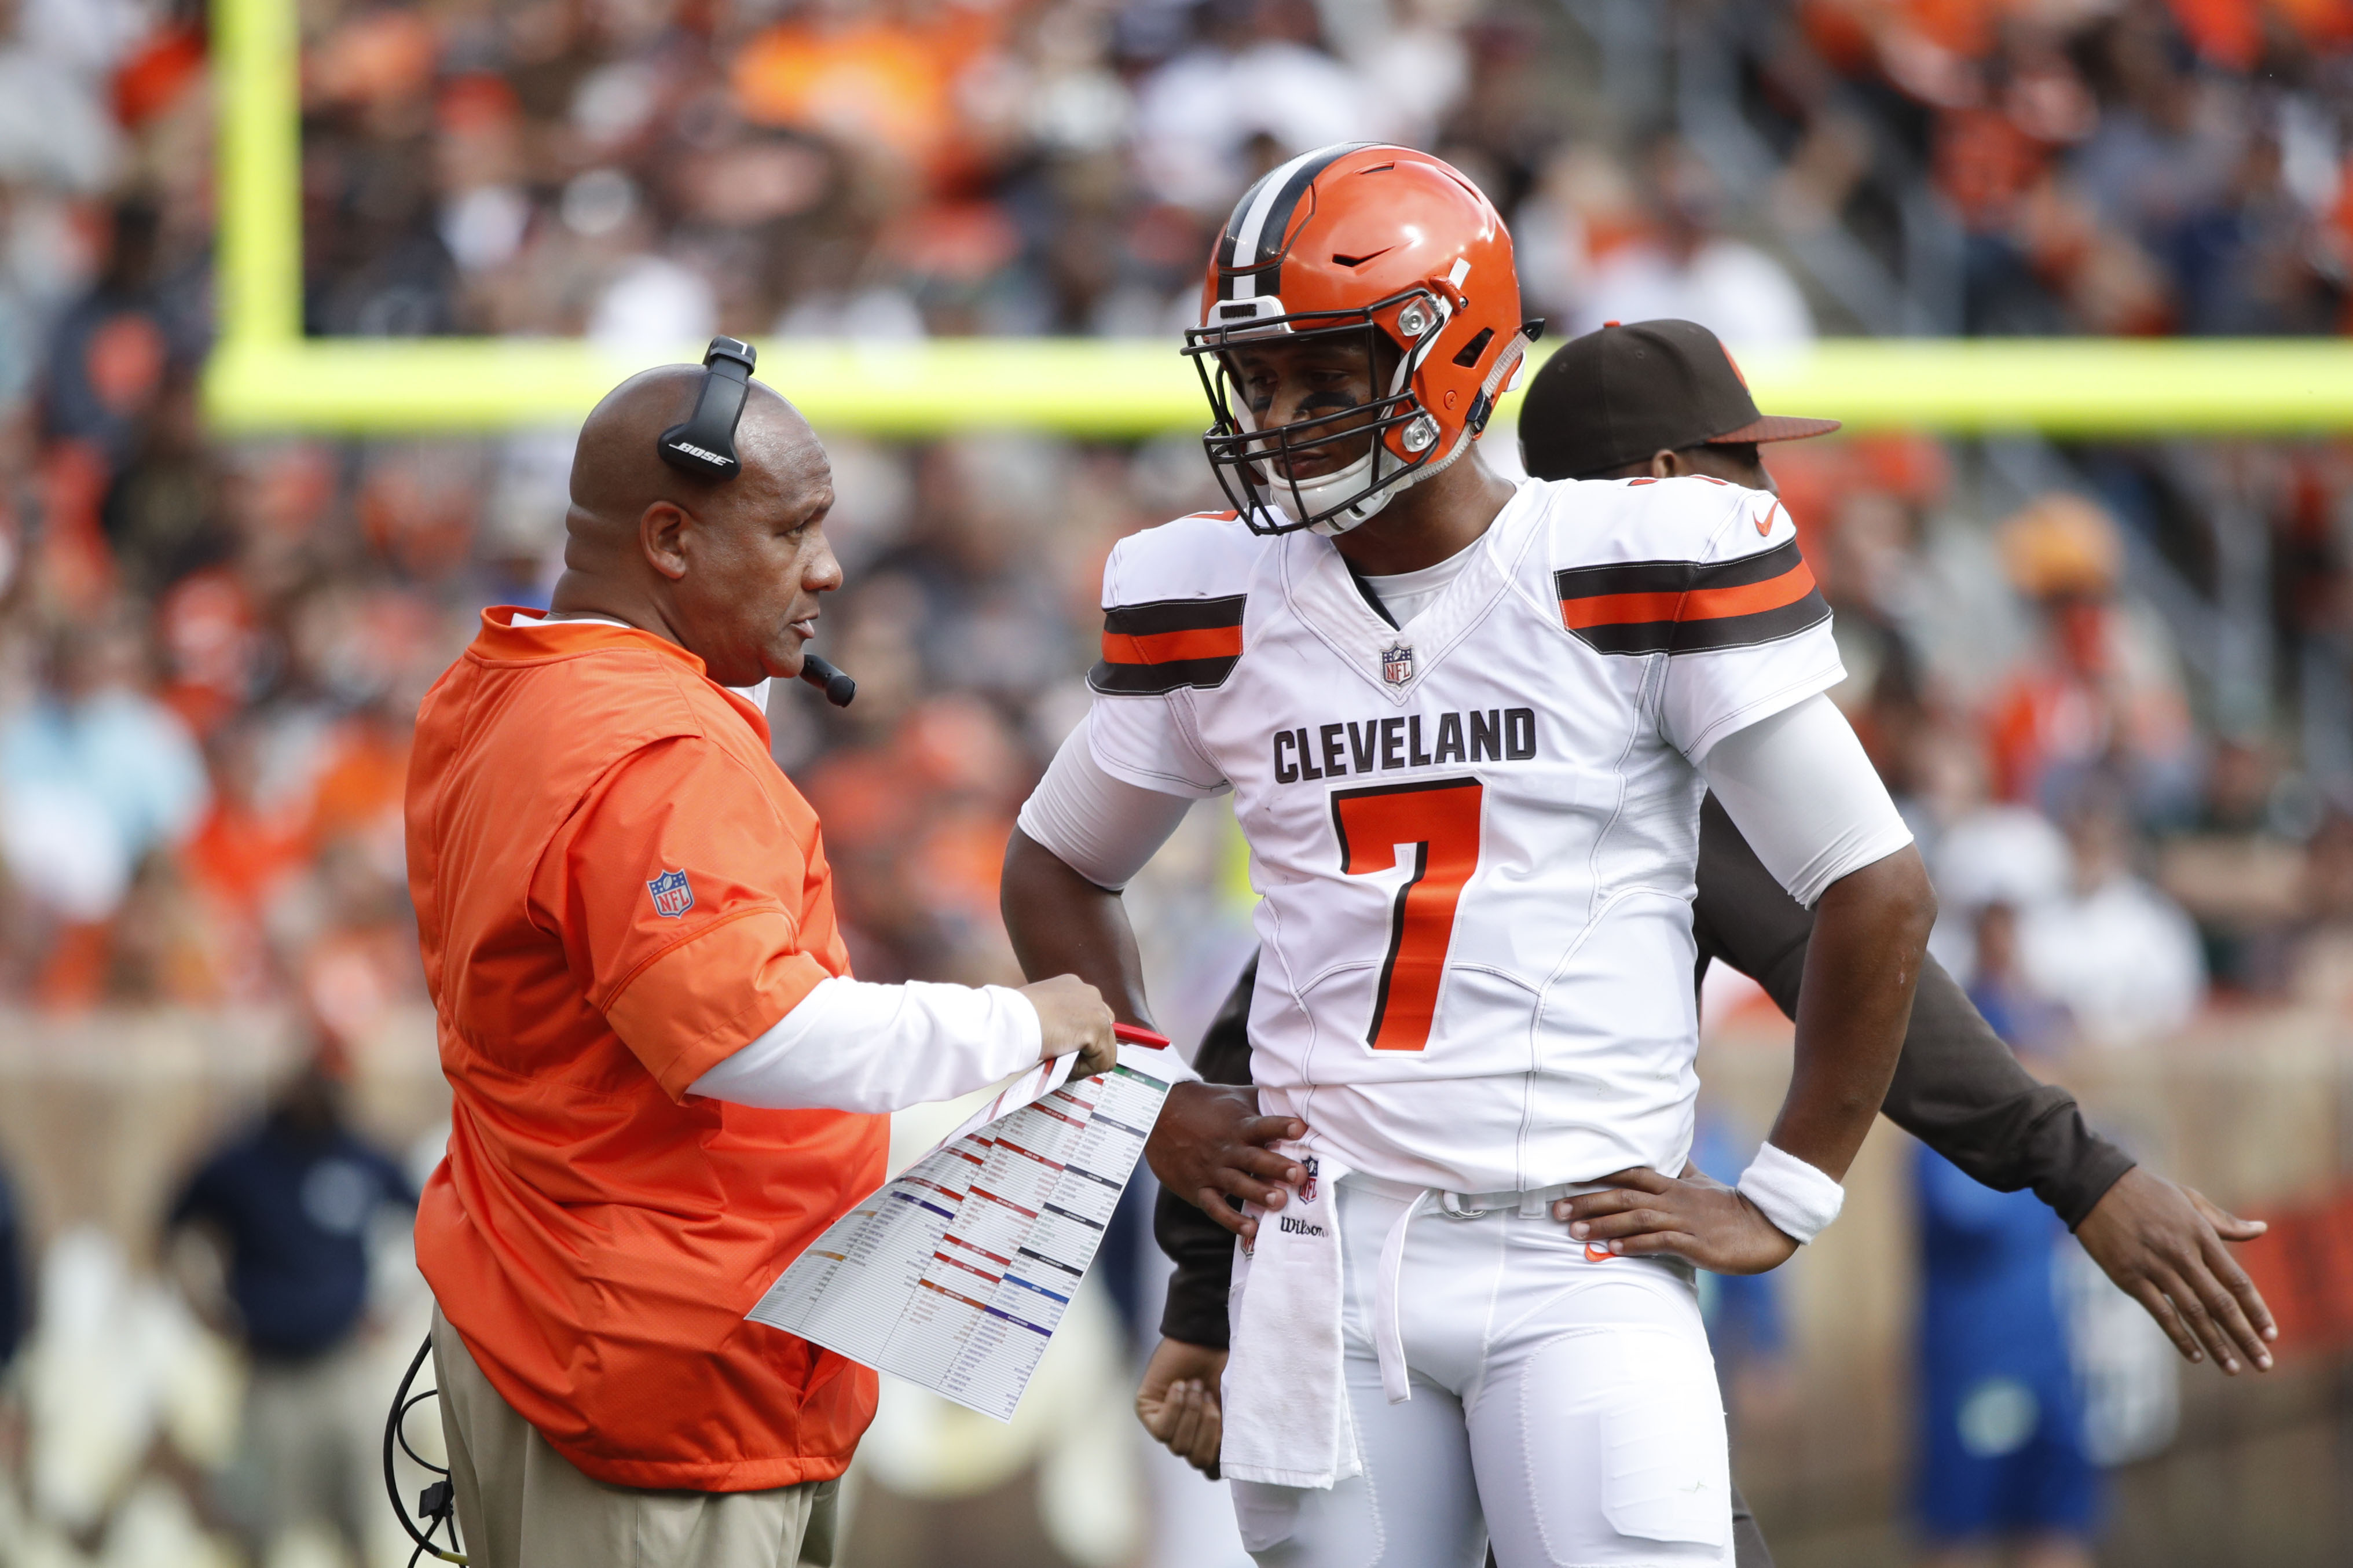 John Dorsey thinks Hue Jackson will be Browns' coach next season